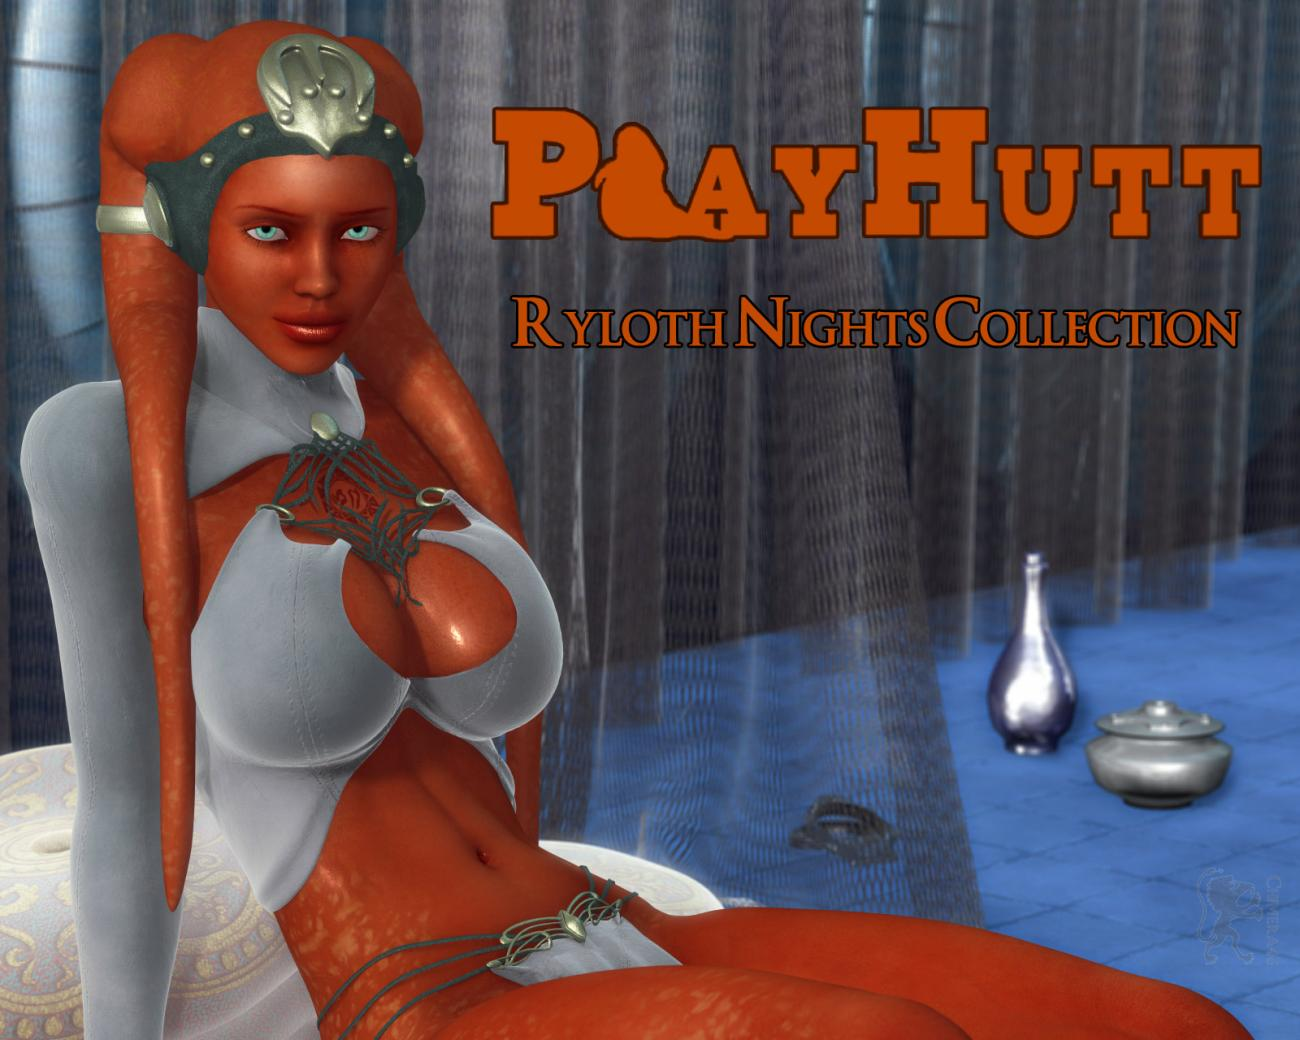 Playhutt: Ryloth Nights Collection [Star Wars]